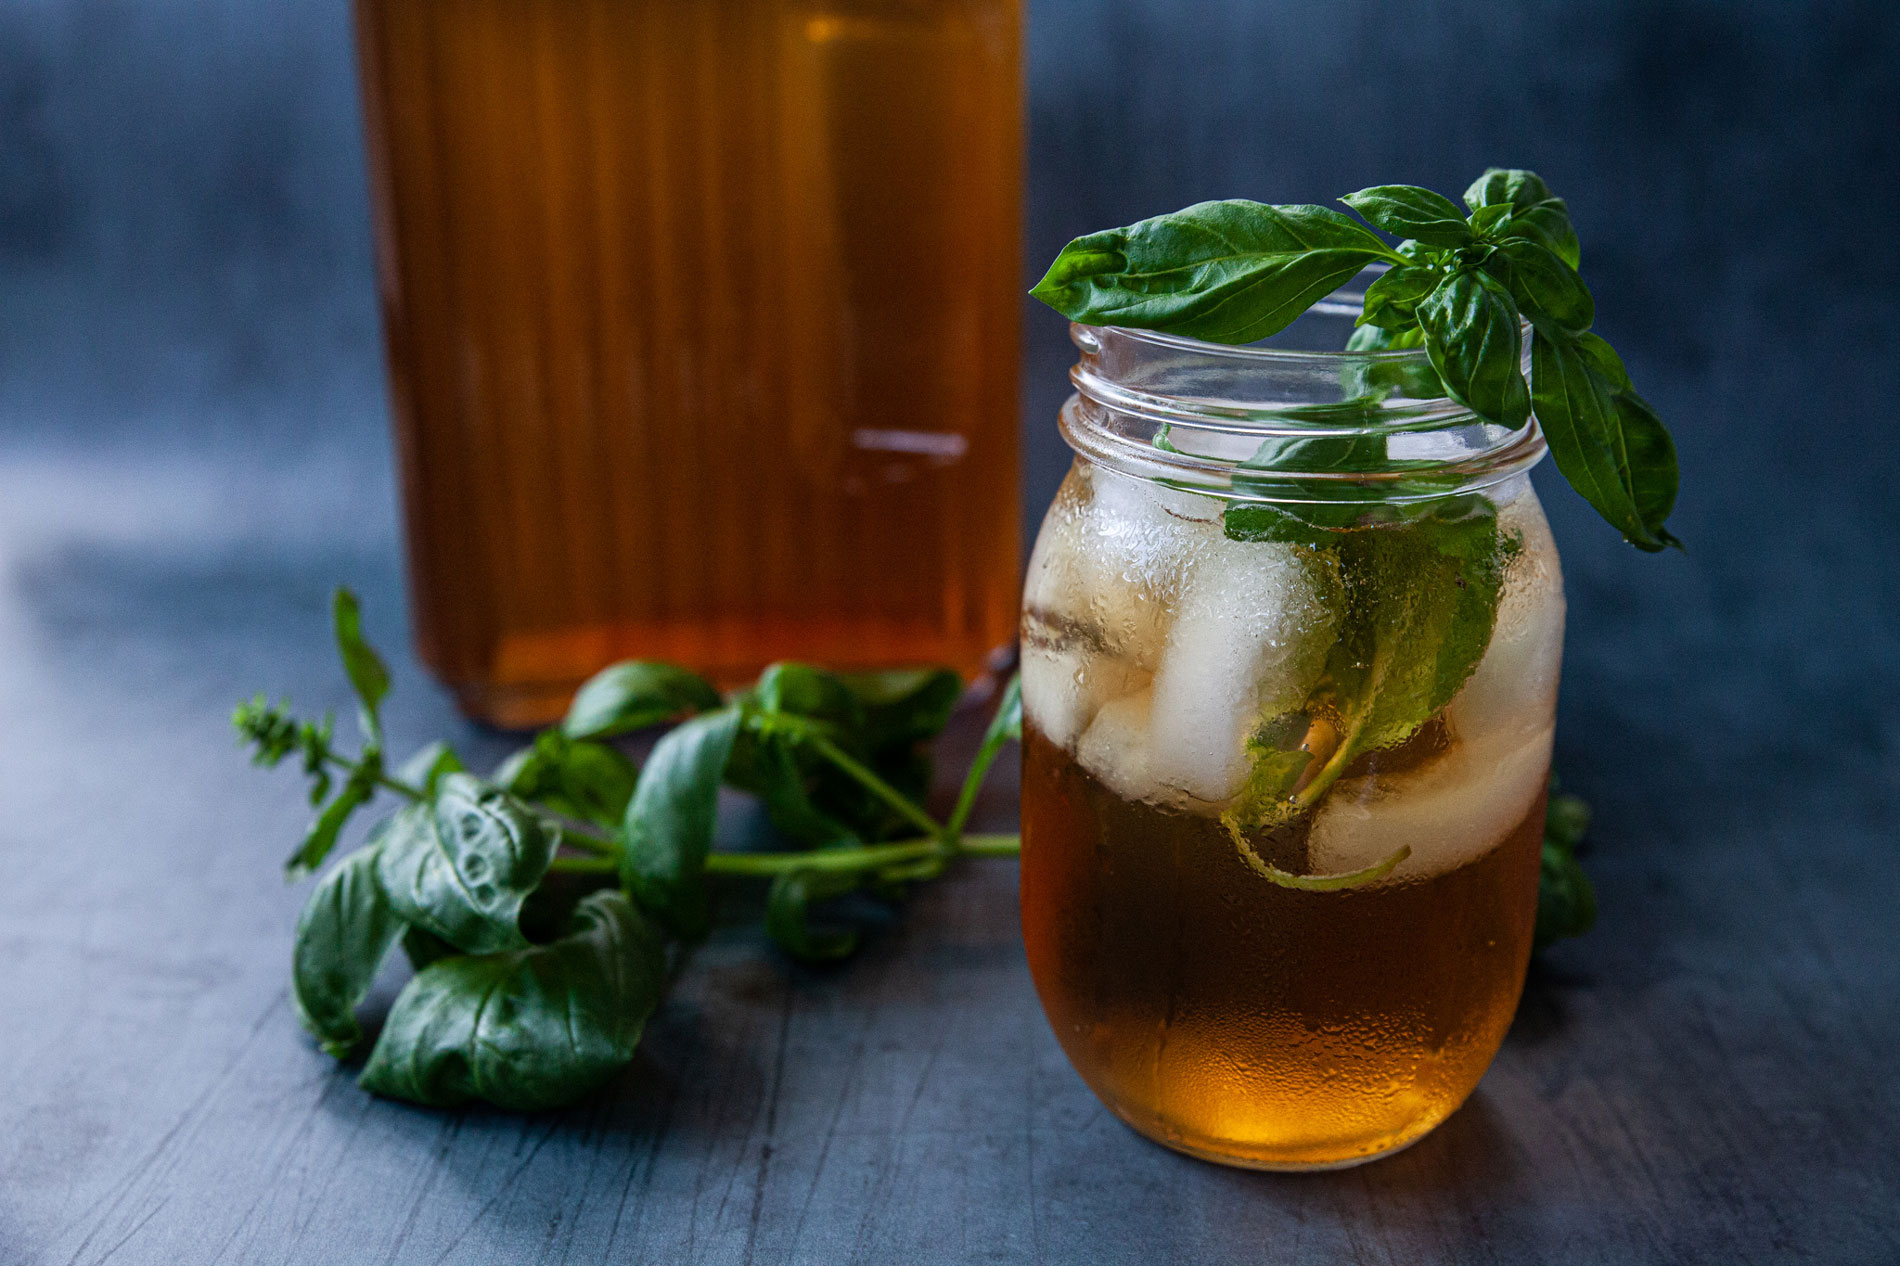 A glass mason jar filled with cold, refreshing iced tea.